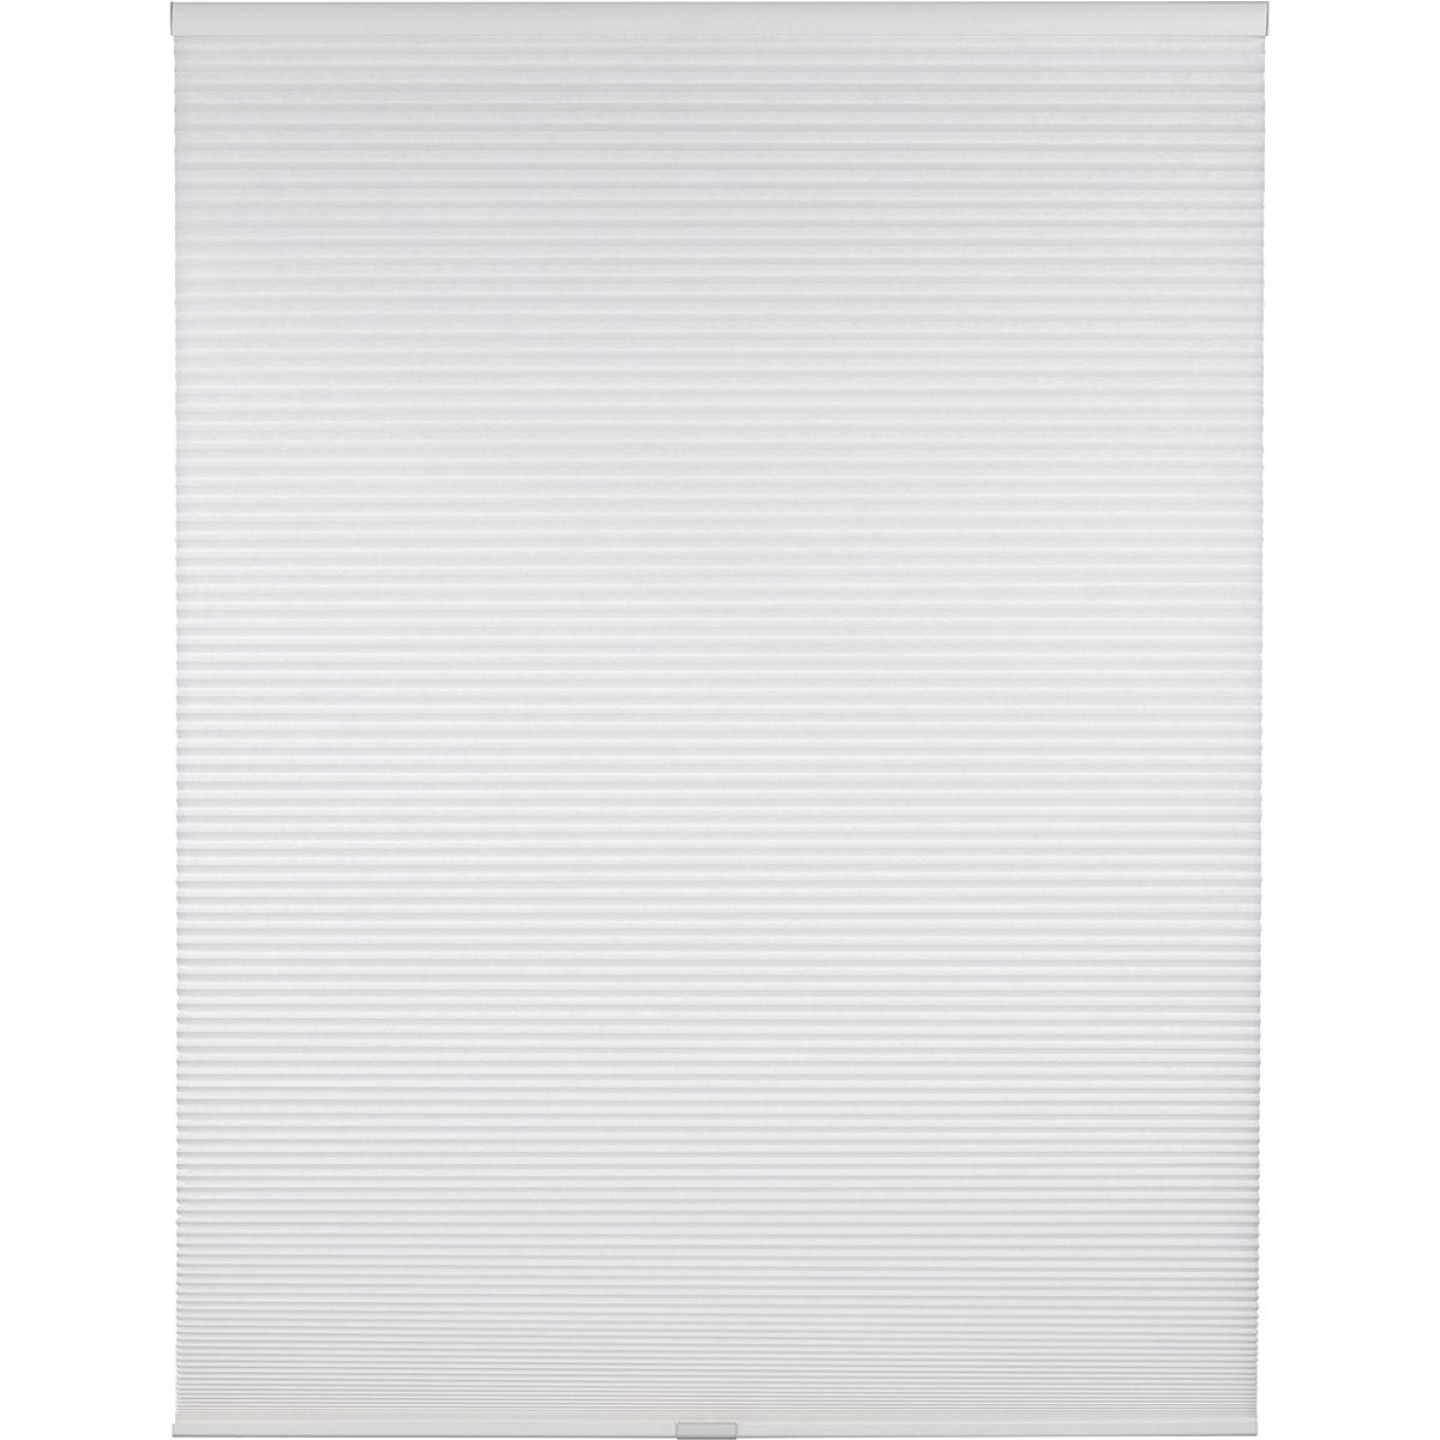 Home Impressions 1 In. Light Filtering Cellular White 23 In. x 72 In. Cordless Shade Image 1